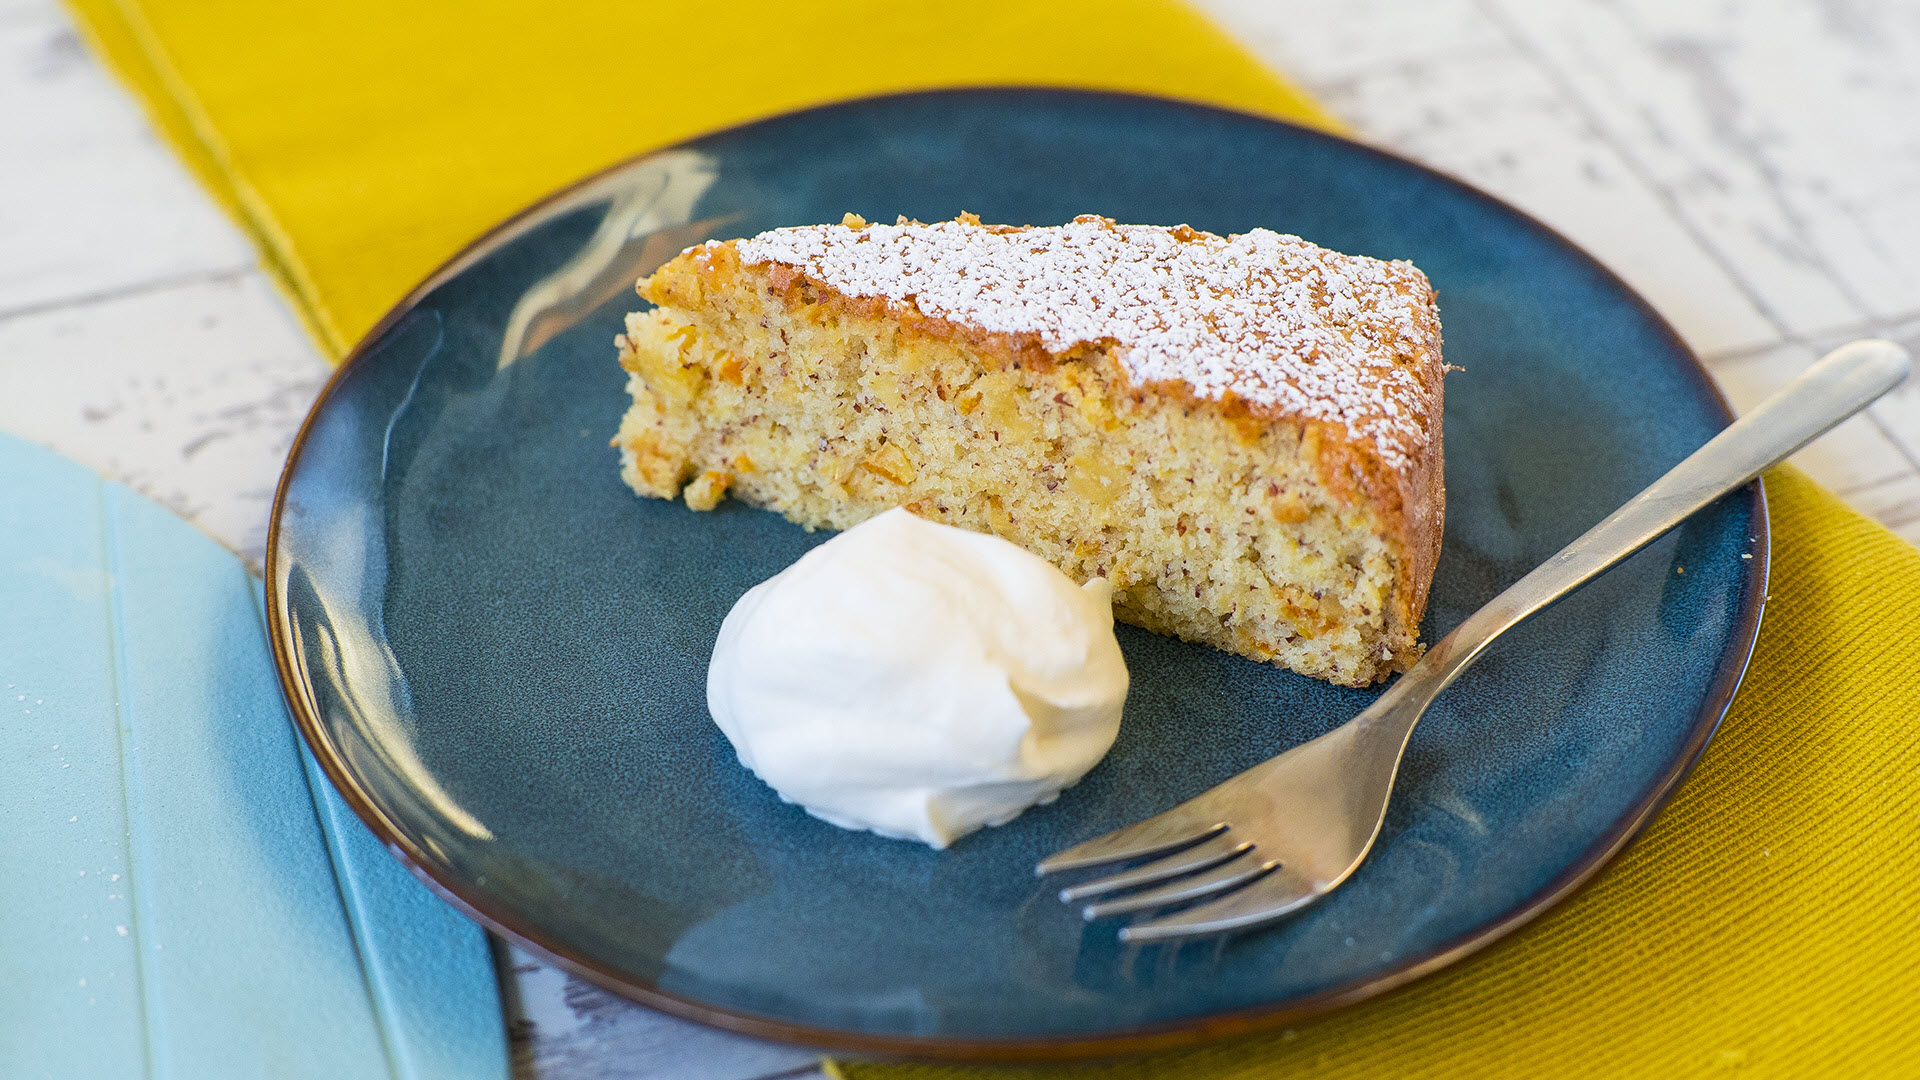 Orange Cake with Semolina and Almonds